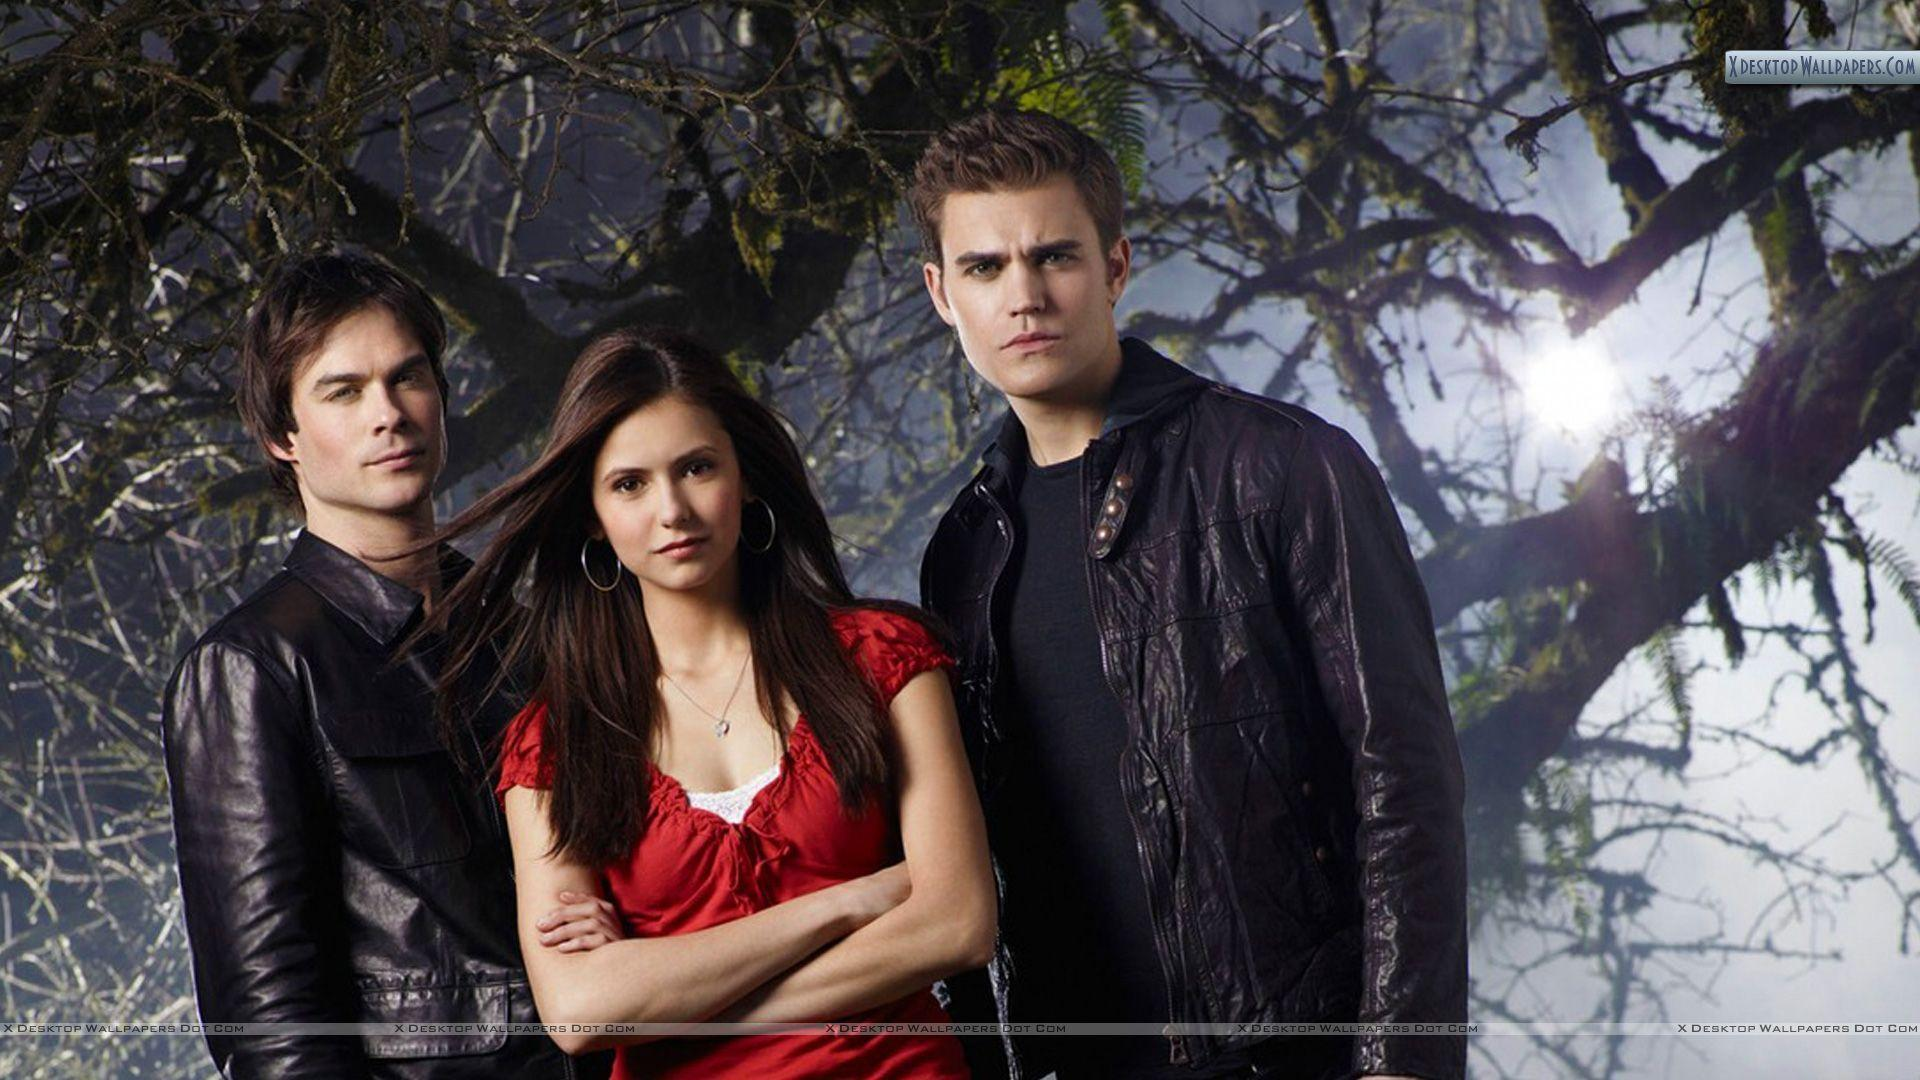 The Vampire Diaries Wallpapers, Photos & Images in HD